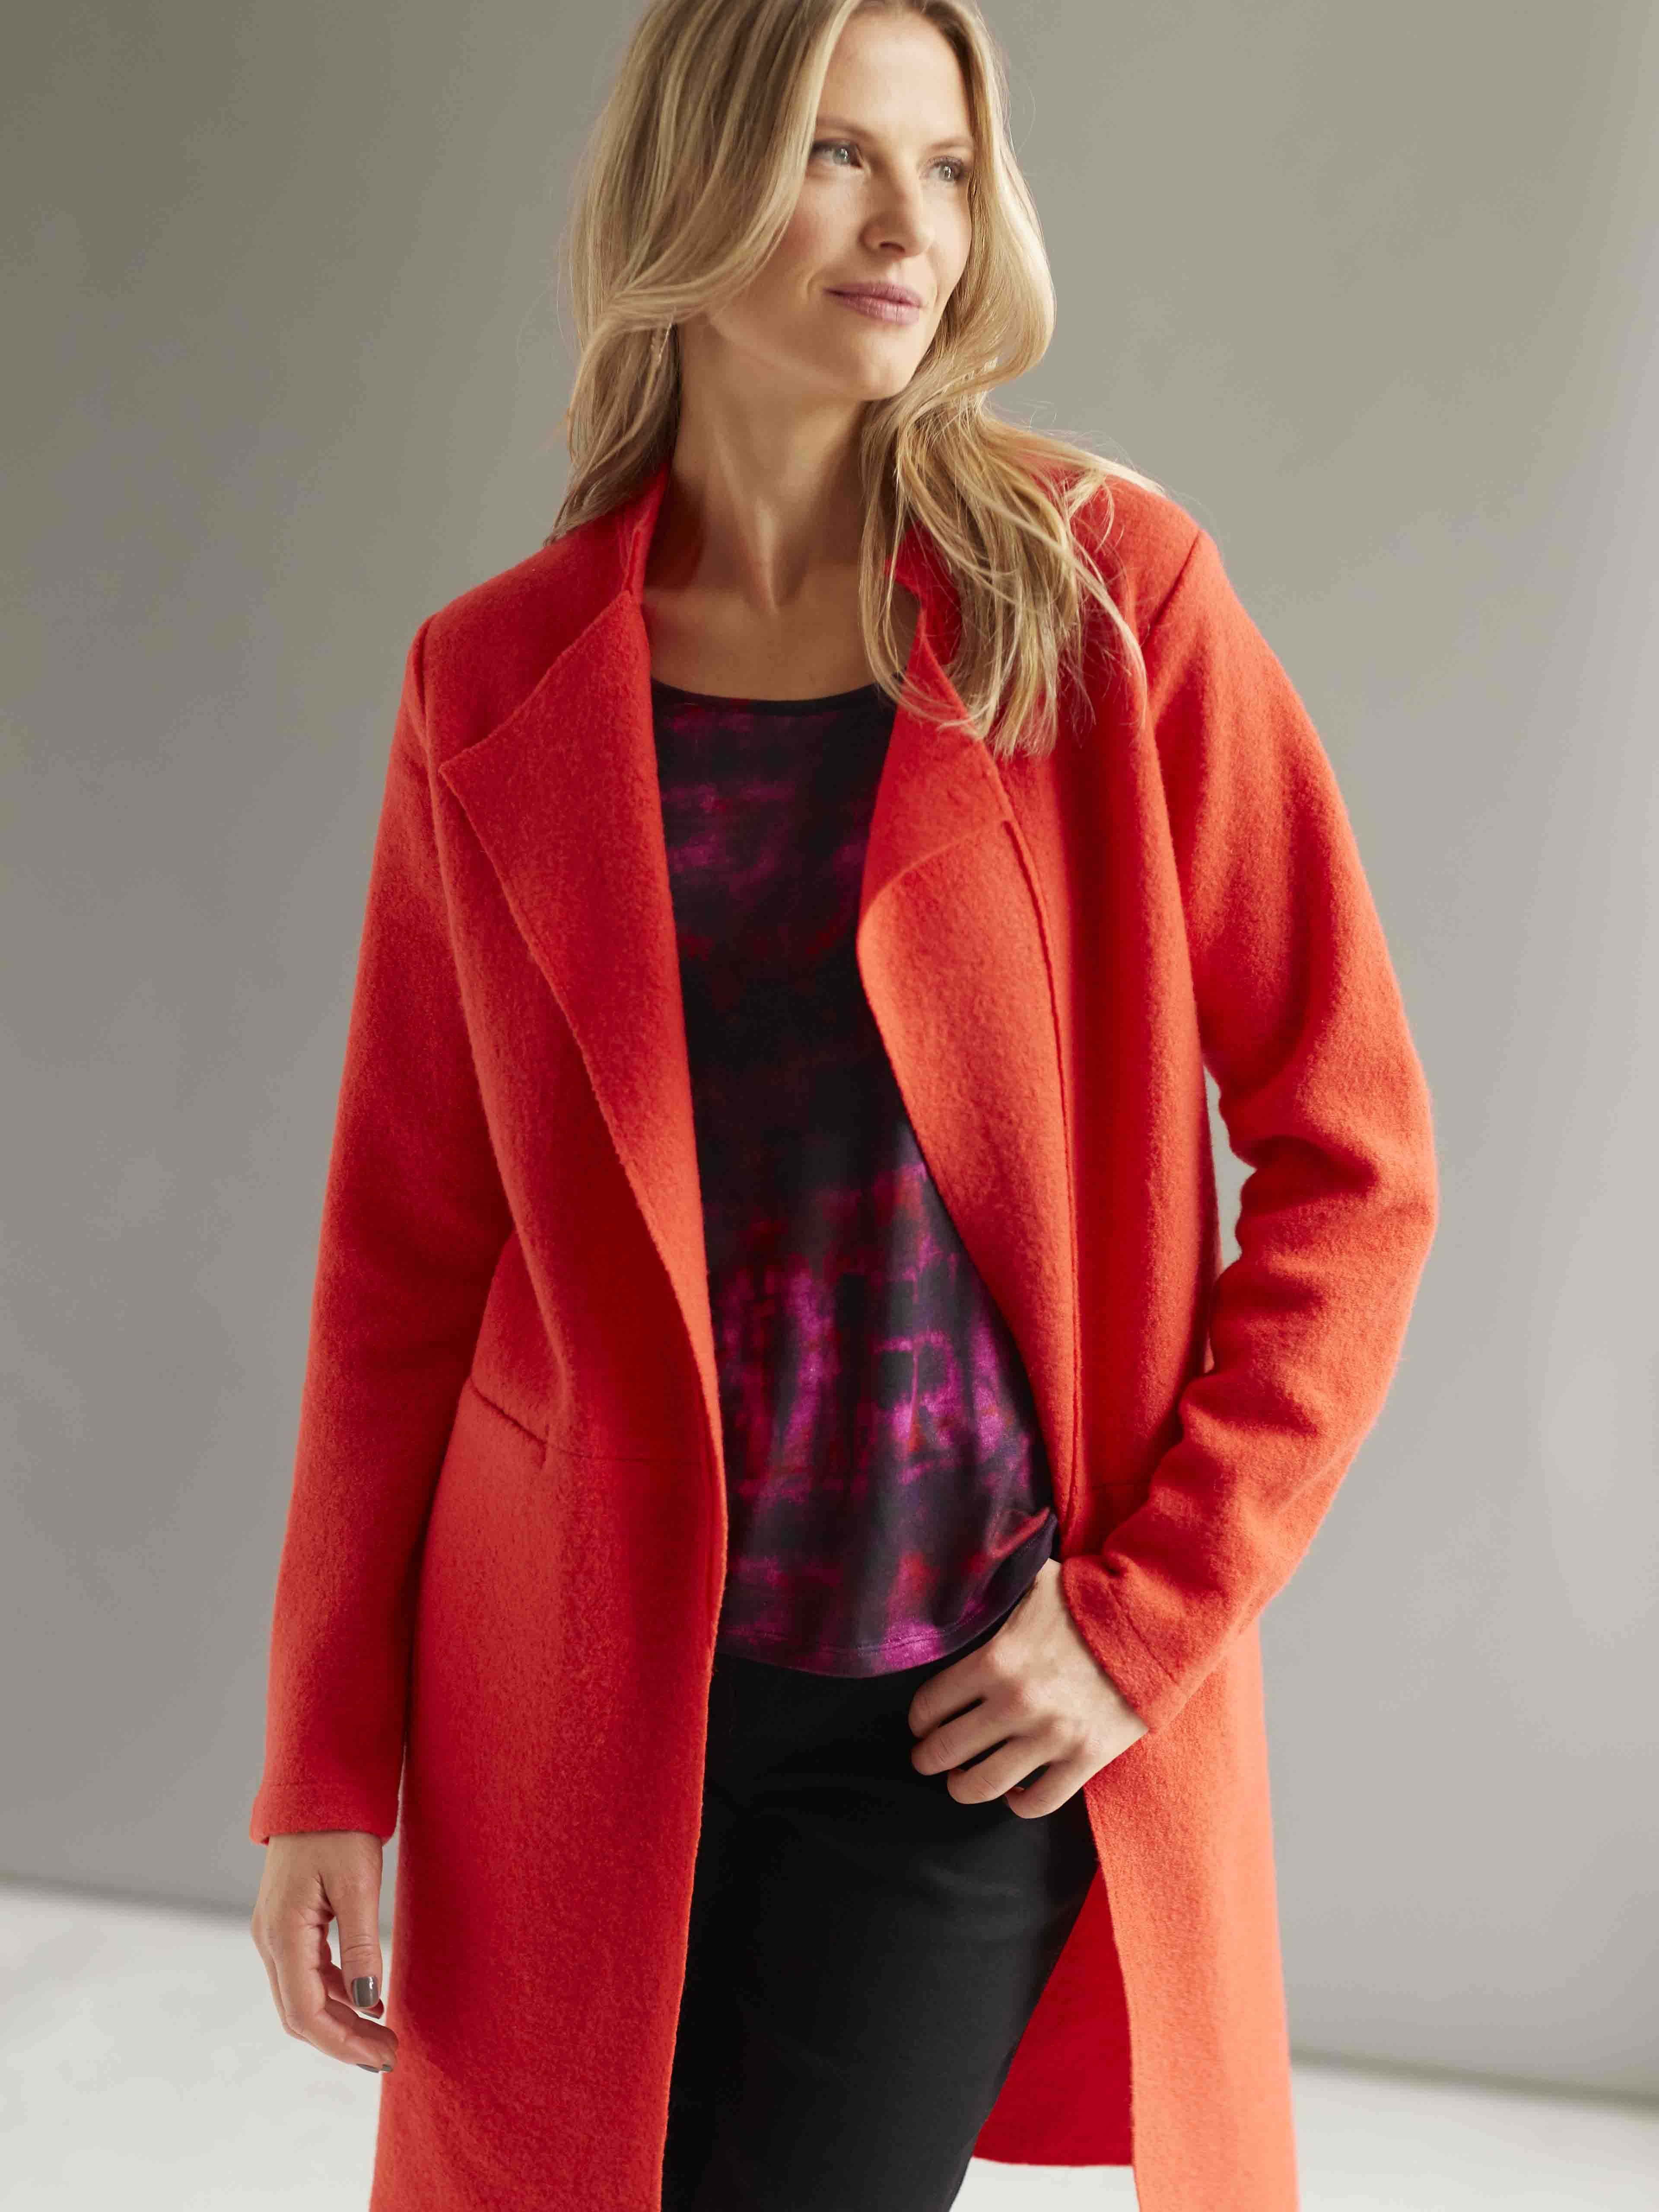 CONRAD C Tomato Red Boiled Wool Coat